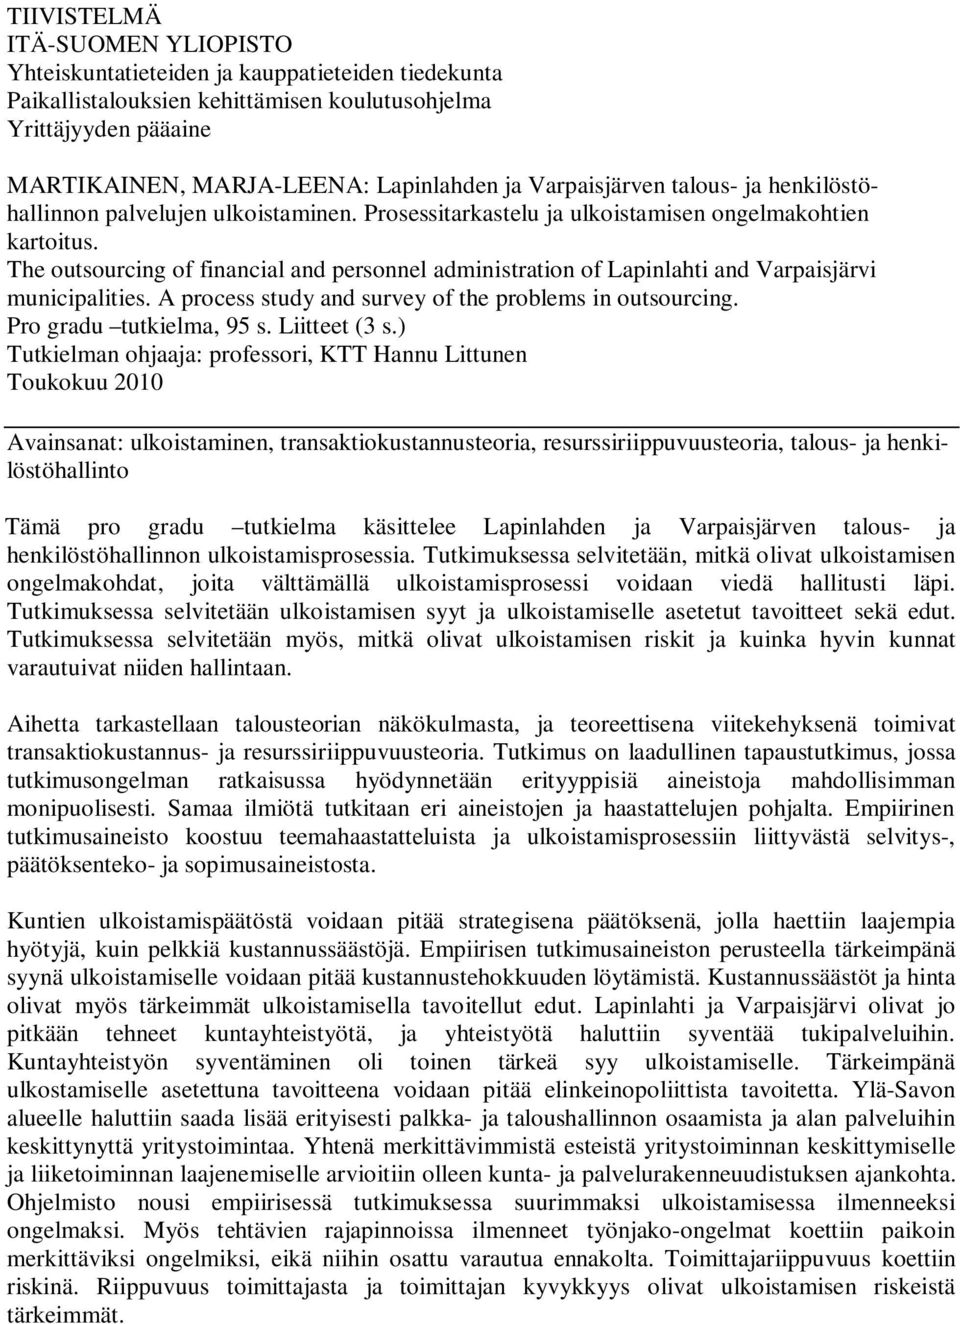 The outsourcing of financial and personnel administration of Lapinlahti and Varpaisjärvi municipalities. A process study and survey of the problems in outsourcing. Pro gradu tutkielma, 95 s.